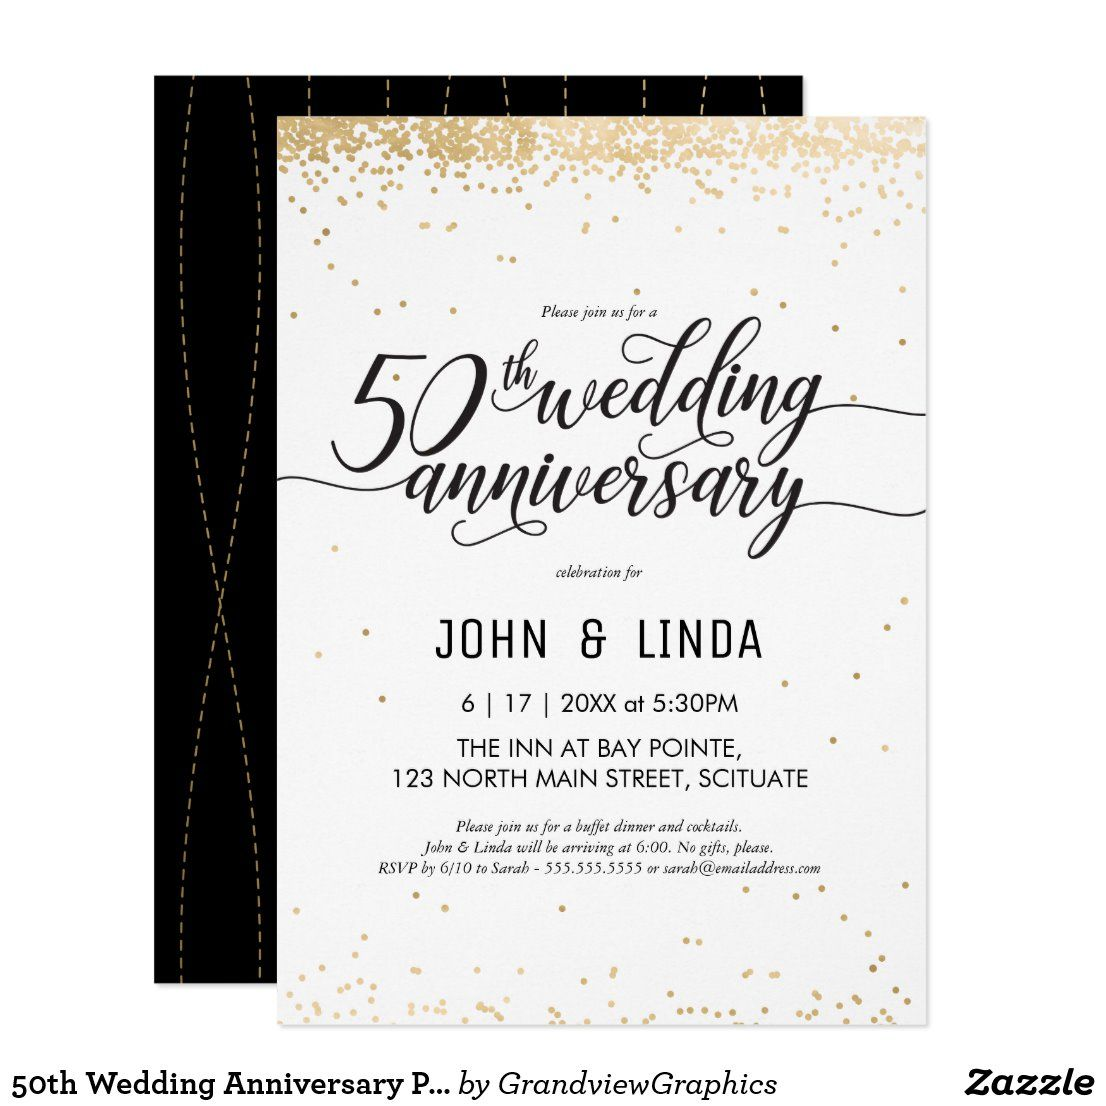 50th Wedding Anniversary Party Invite Golden Zazzle Com In 2020 50th Wedding Anniversary Party Wedding Anniversary Party Anniversary Party Invitations